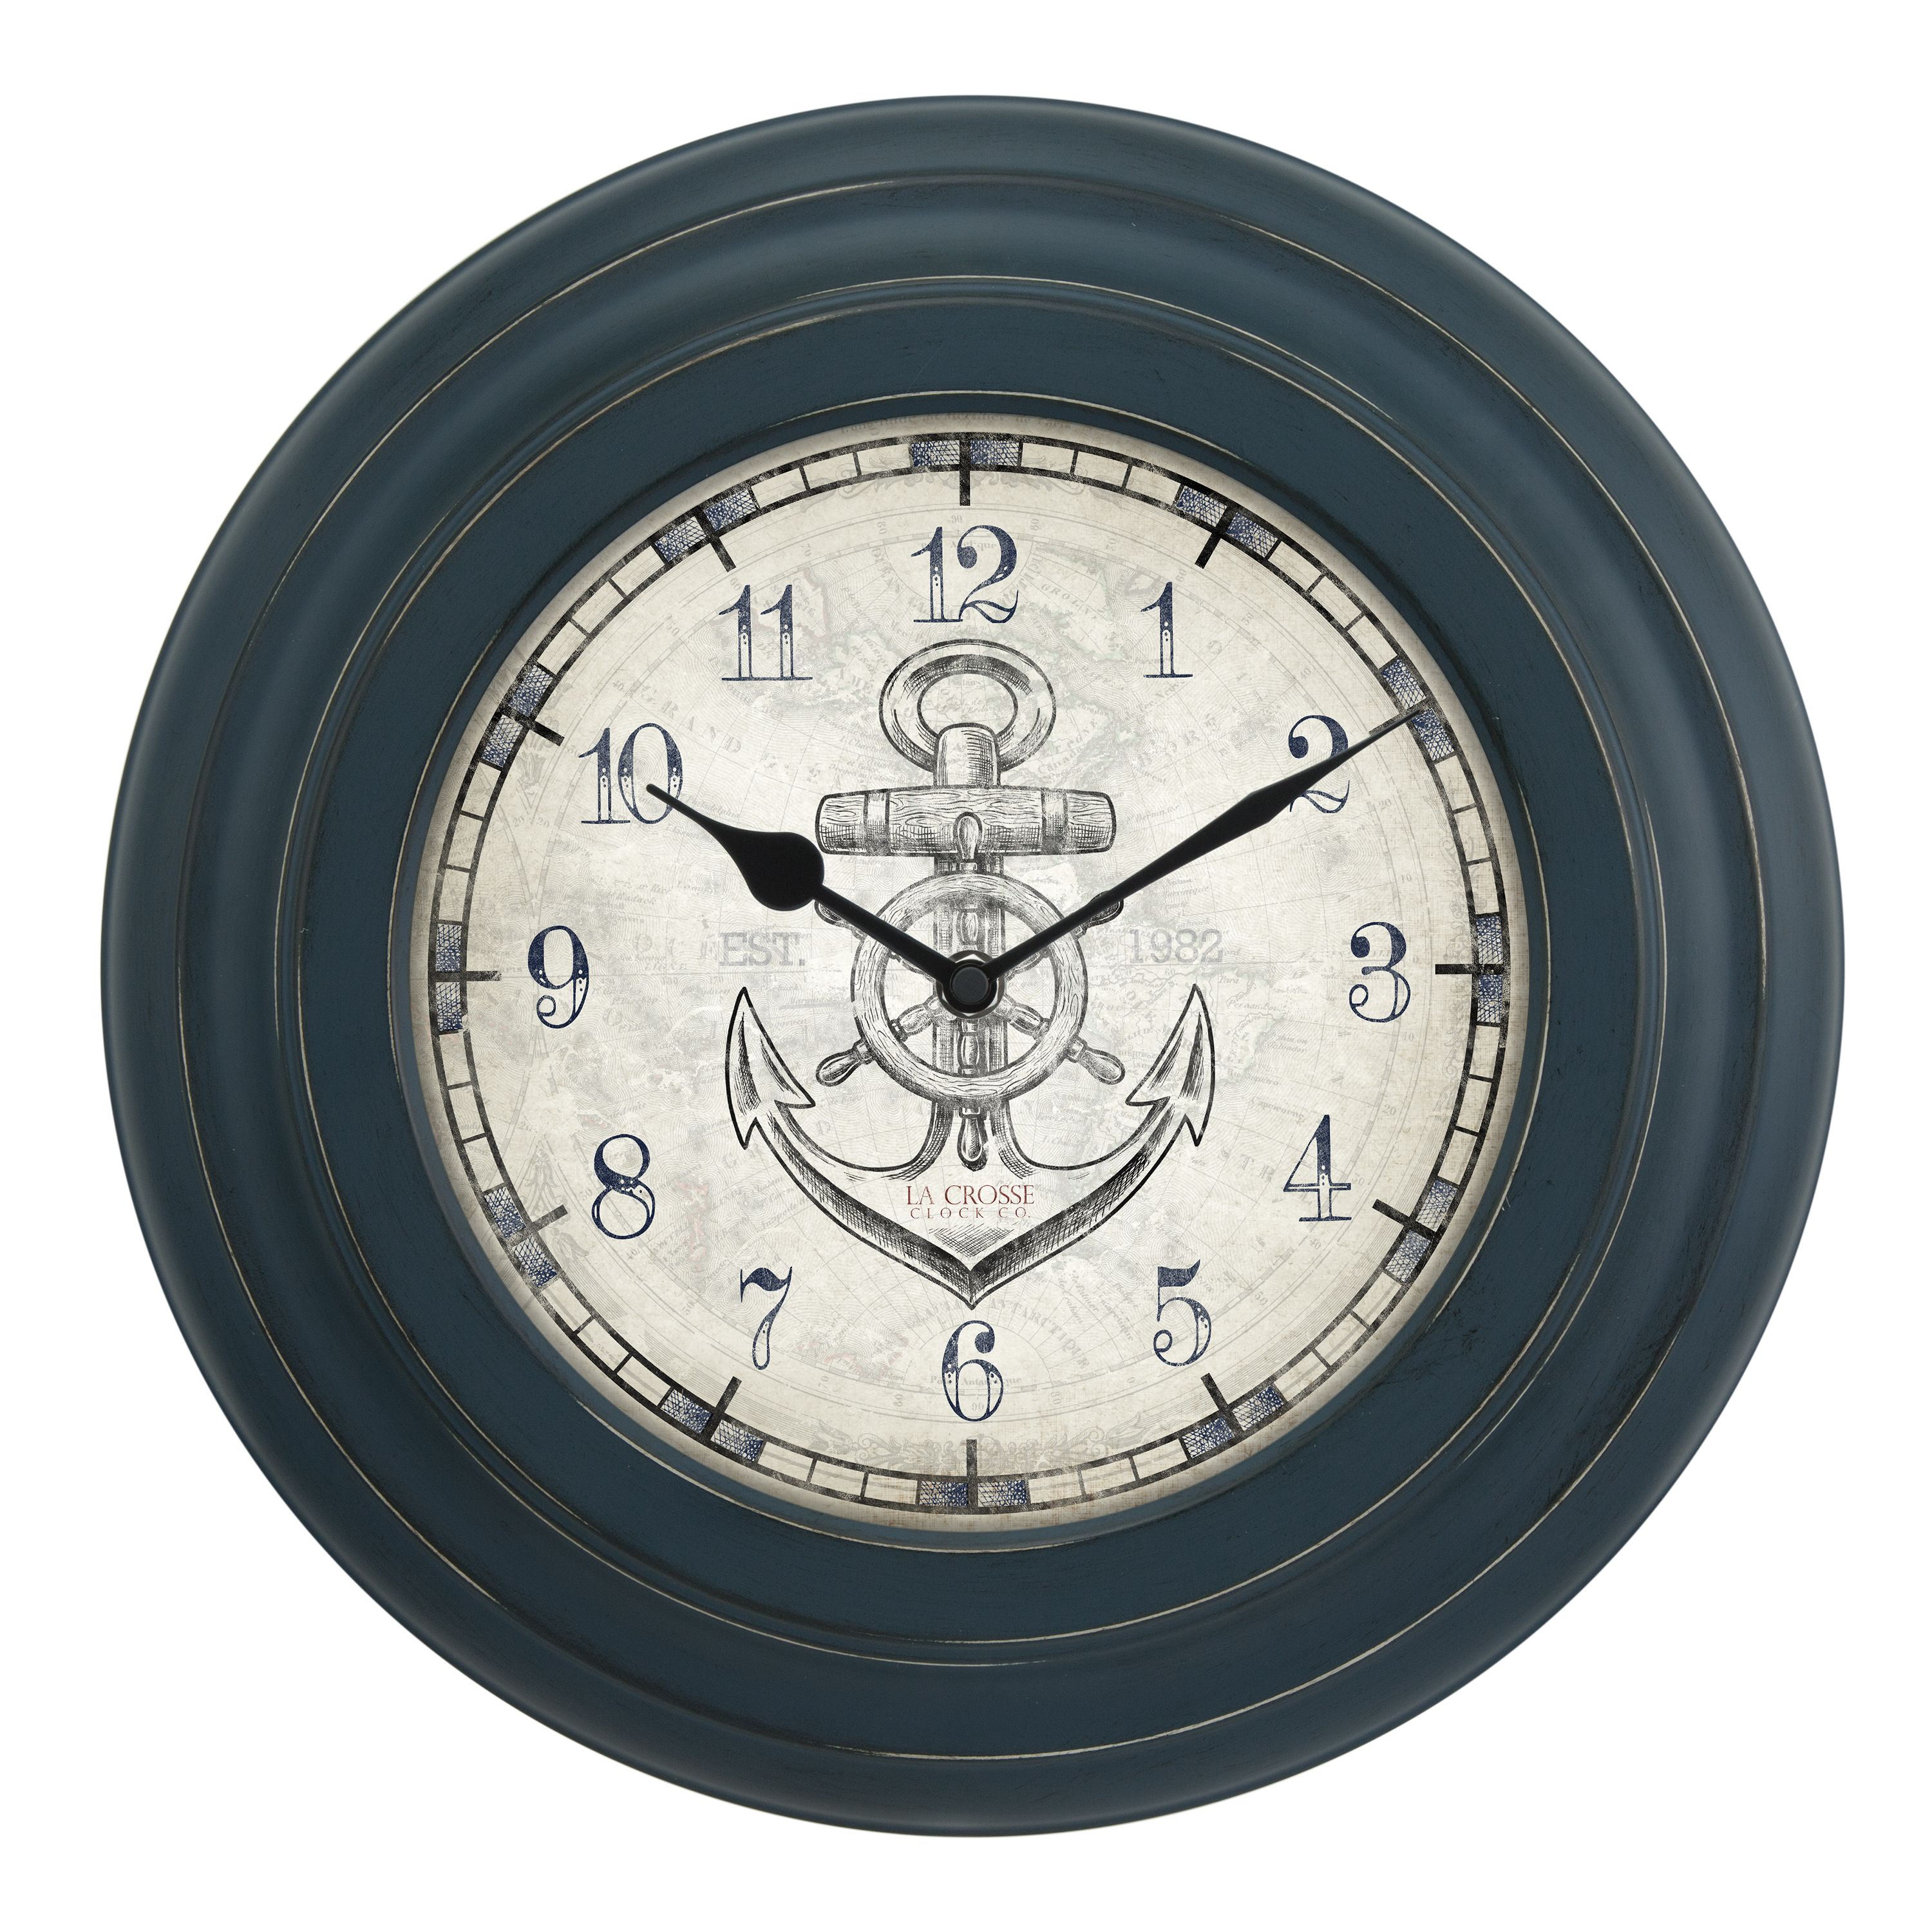 La Crosse Clock BBB85395 14 Inch Distressed Blue Metal Wall Clock with Anchor dial